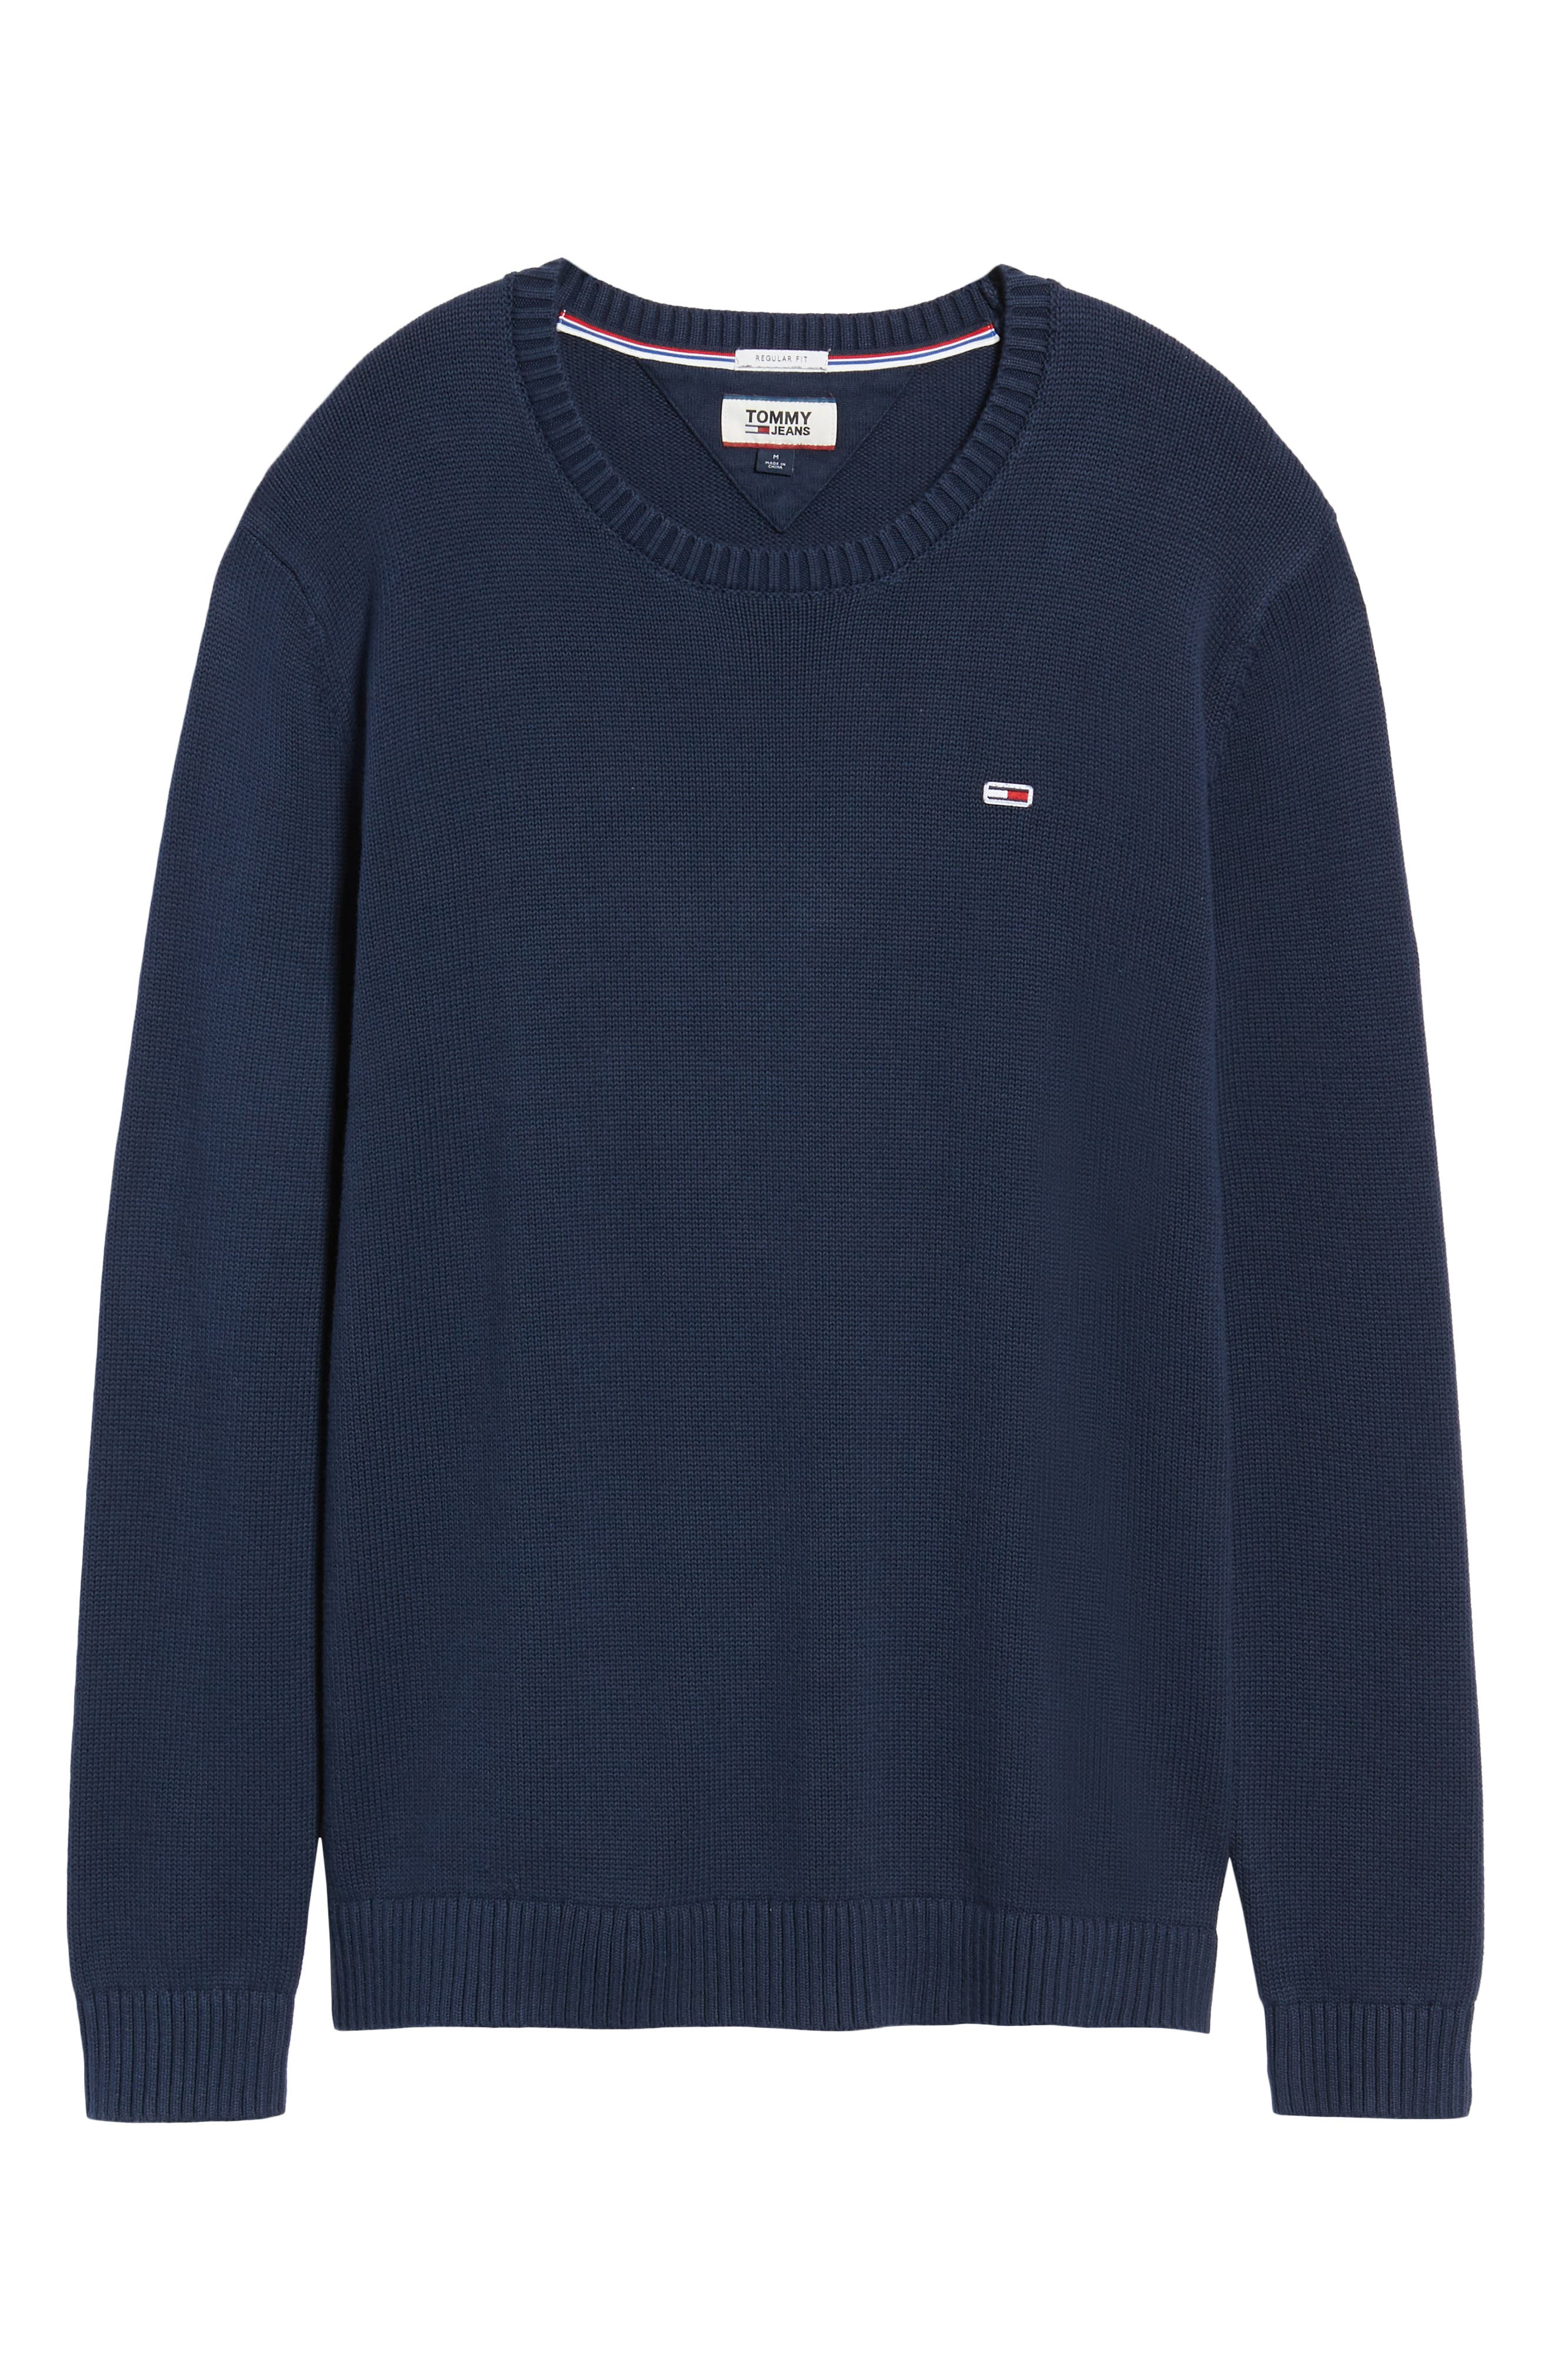 TJM Tommy Classics Sweater,                             Alternate thumbnail 6, color,                             BLACK IRIS